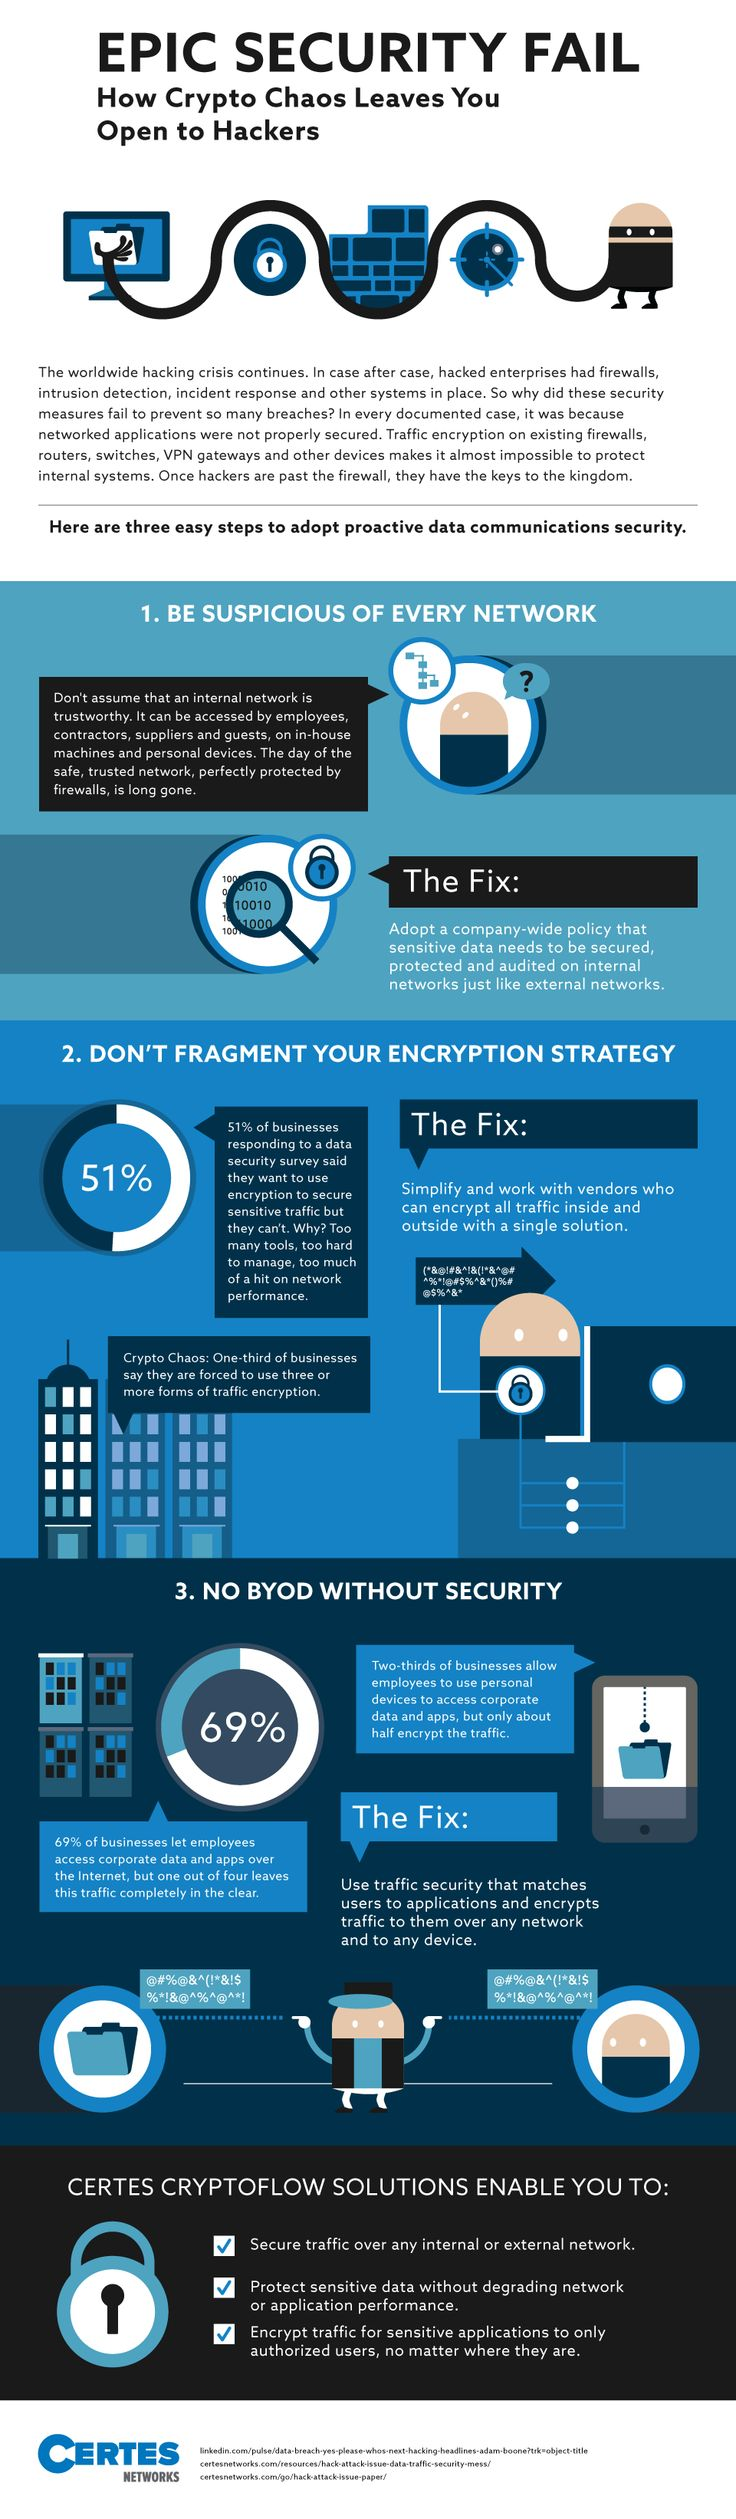 Epic Security Fail: How Crypto Chaos Leaves You Open to Hackers [Infographic]